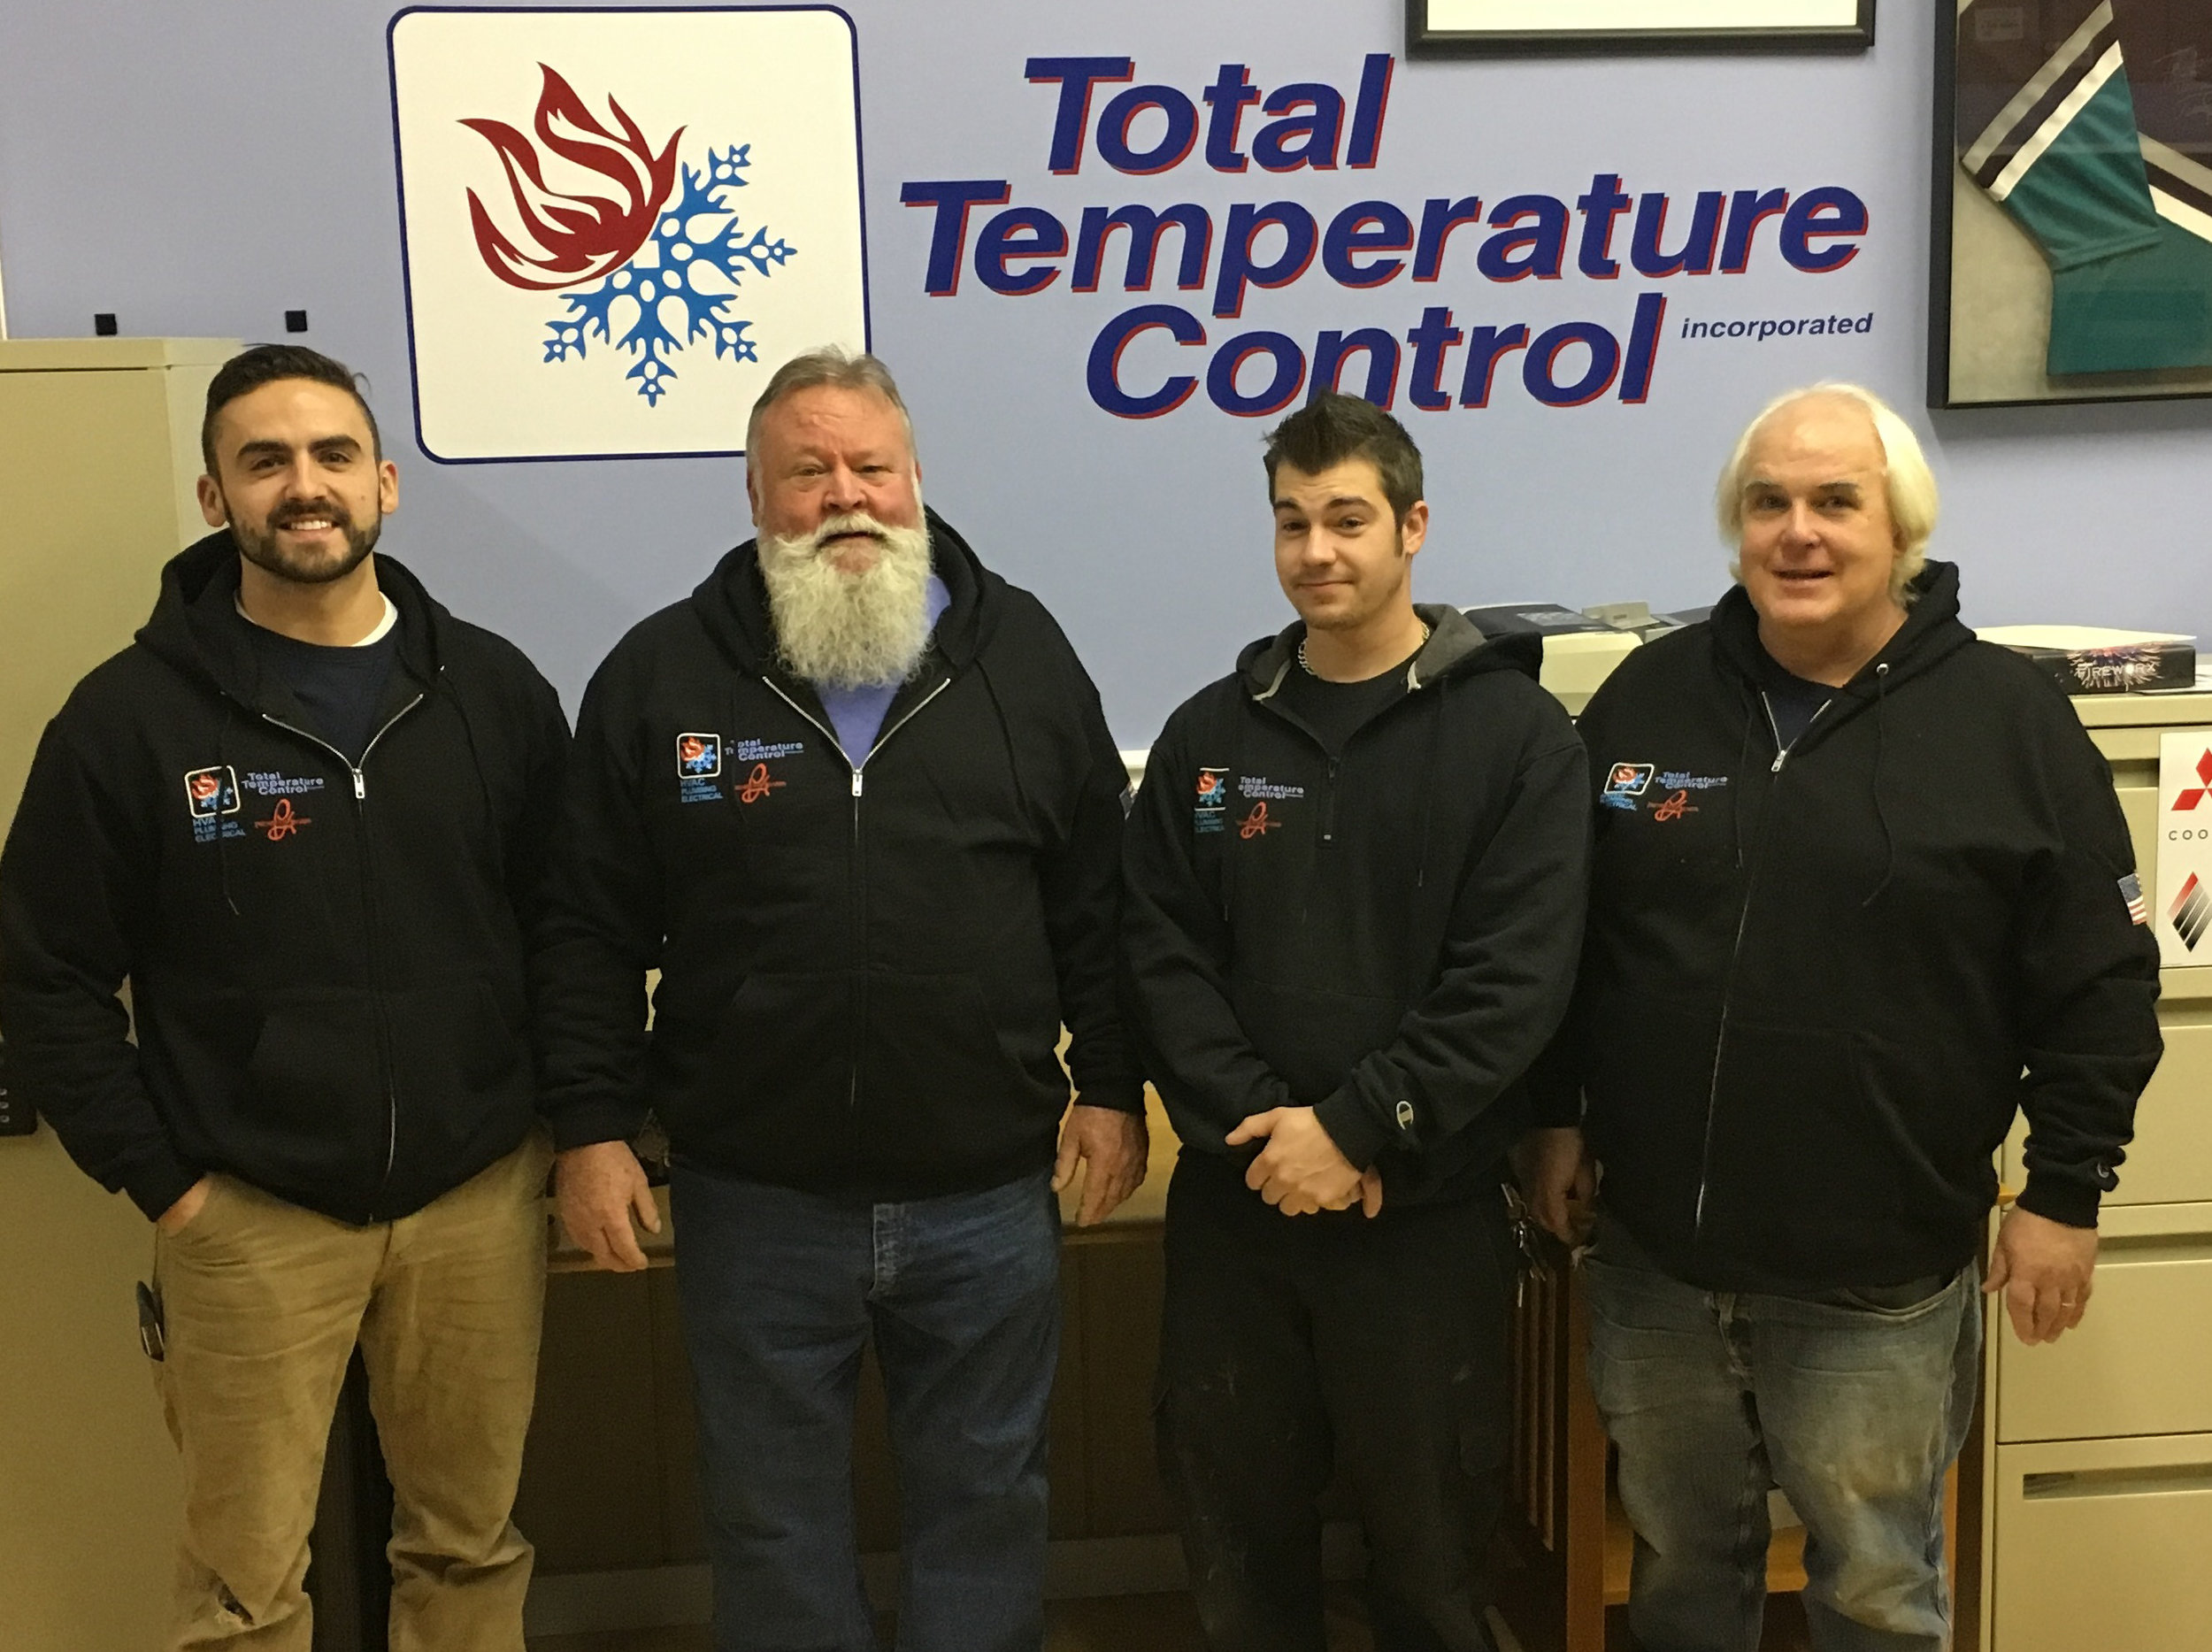 The plumbing staff at Total Temp hold themselves tot he ighest standards of customer care.